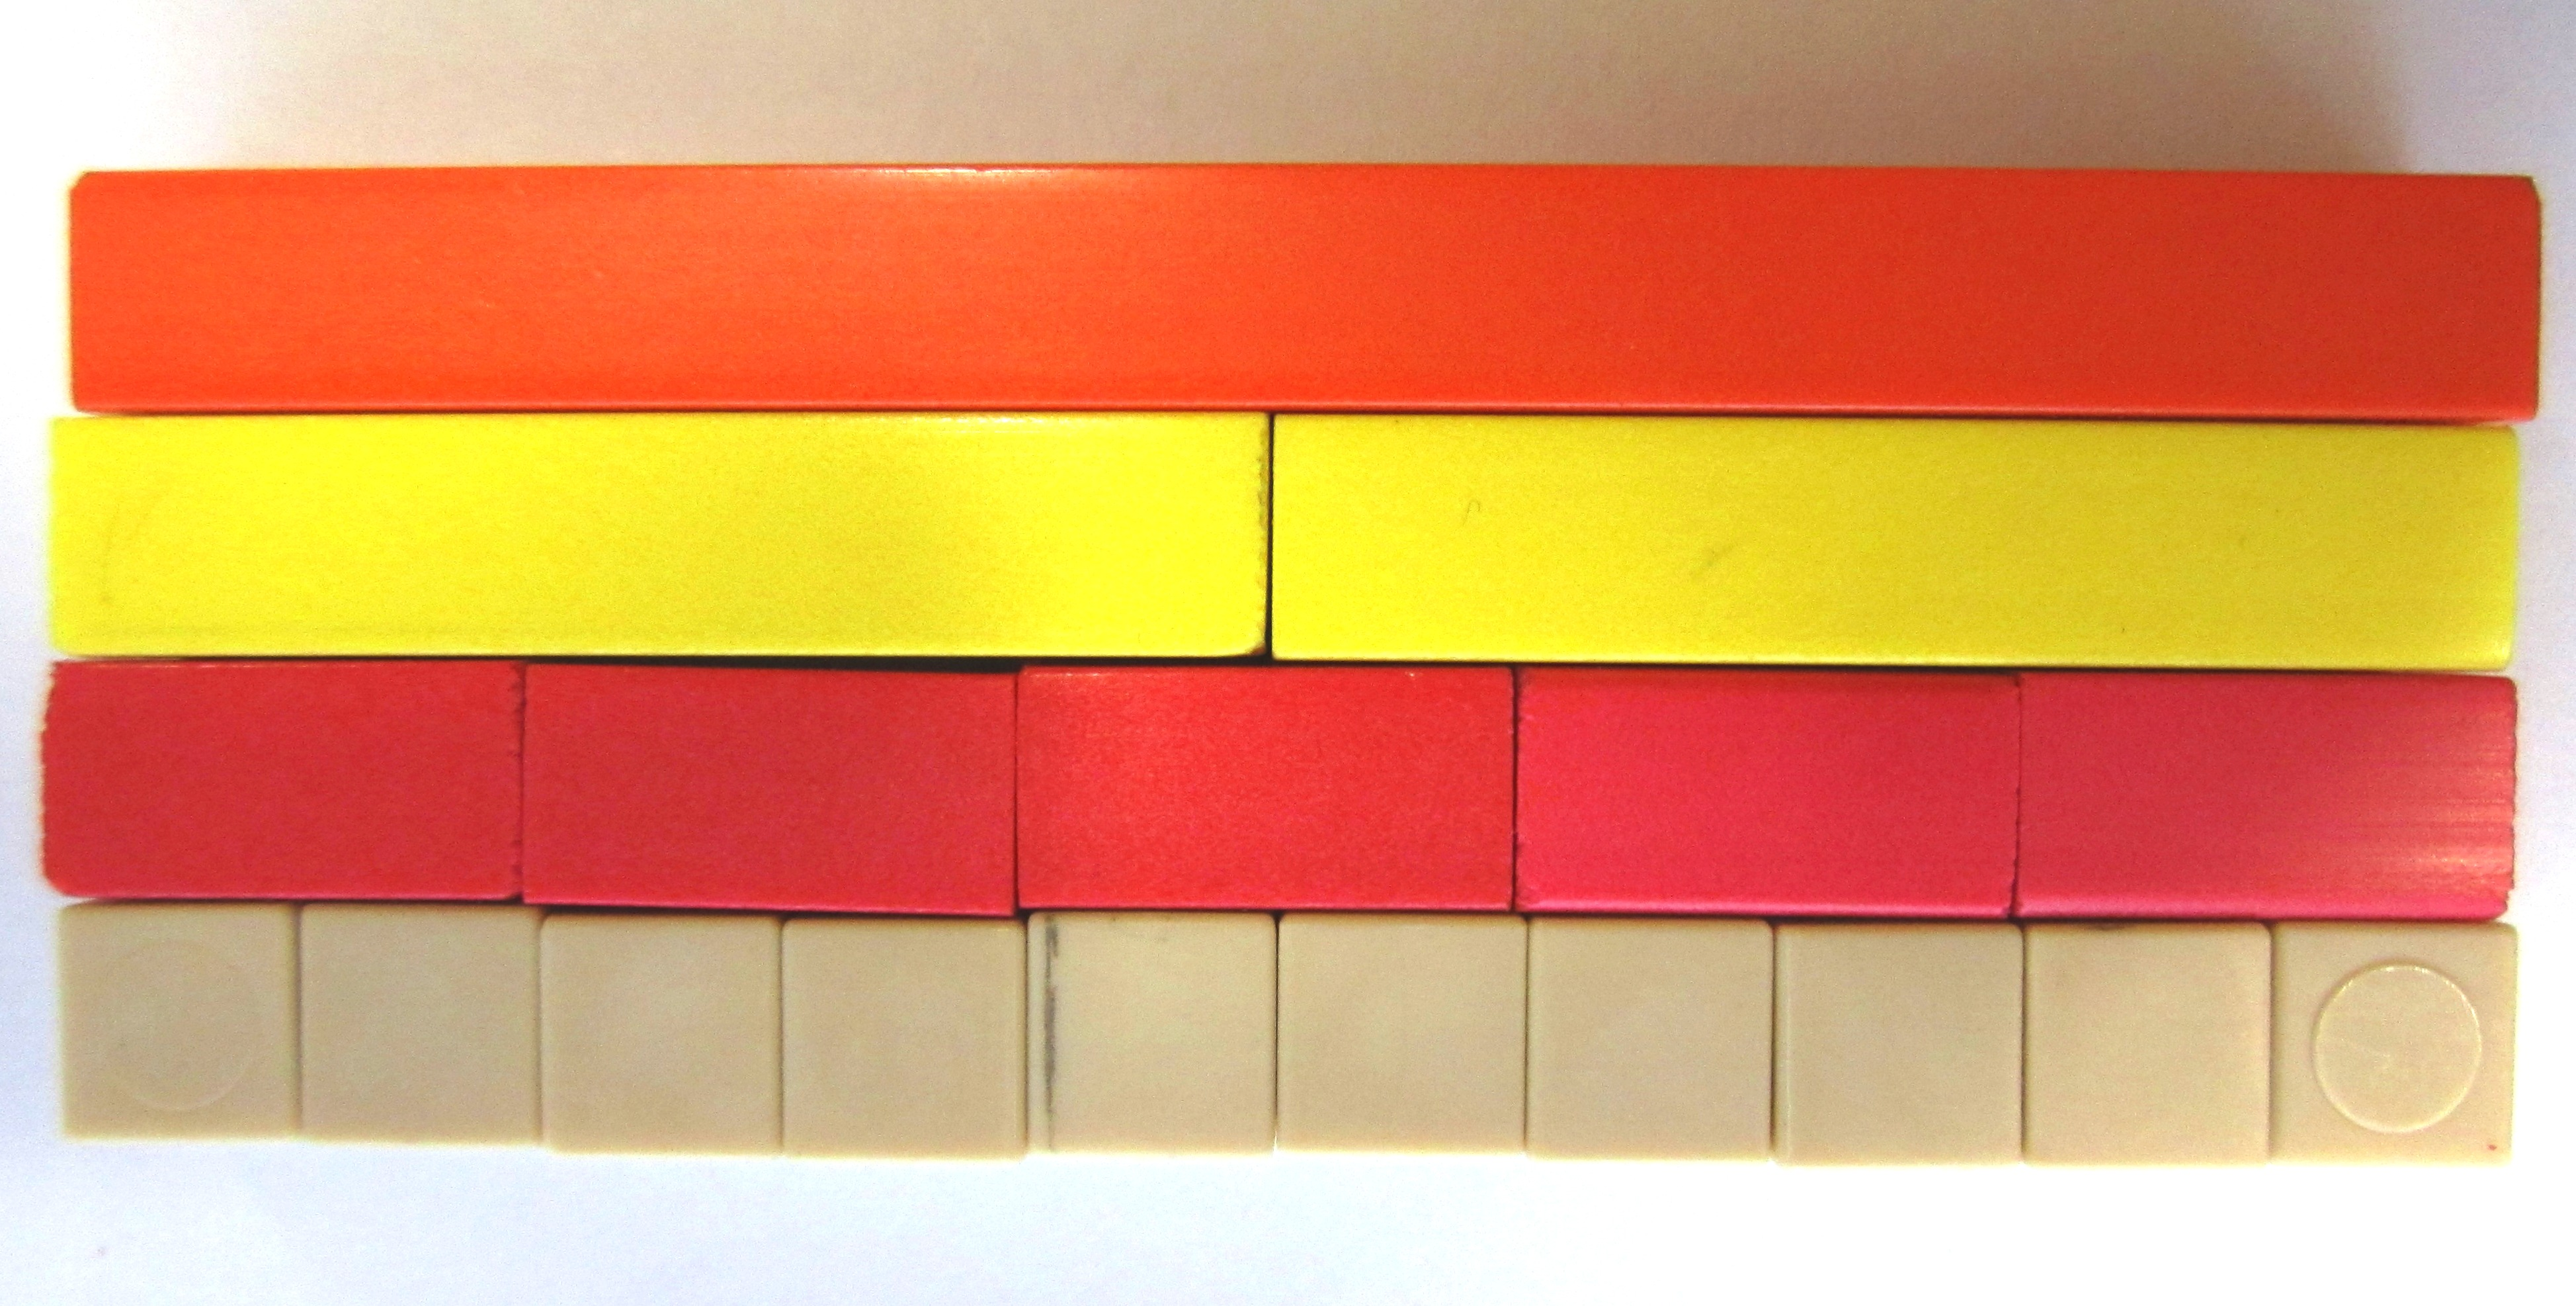 https://upload.wikimedia.org/wikipedia/commons/b/b0/Cuisenaire_ten.JPG